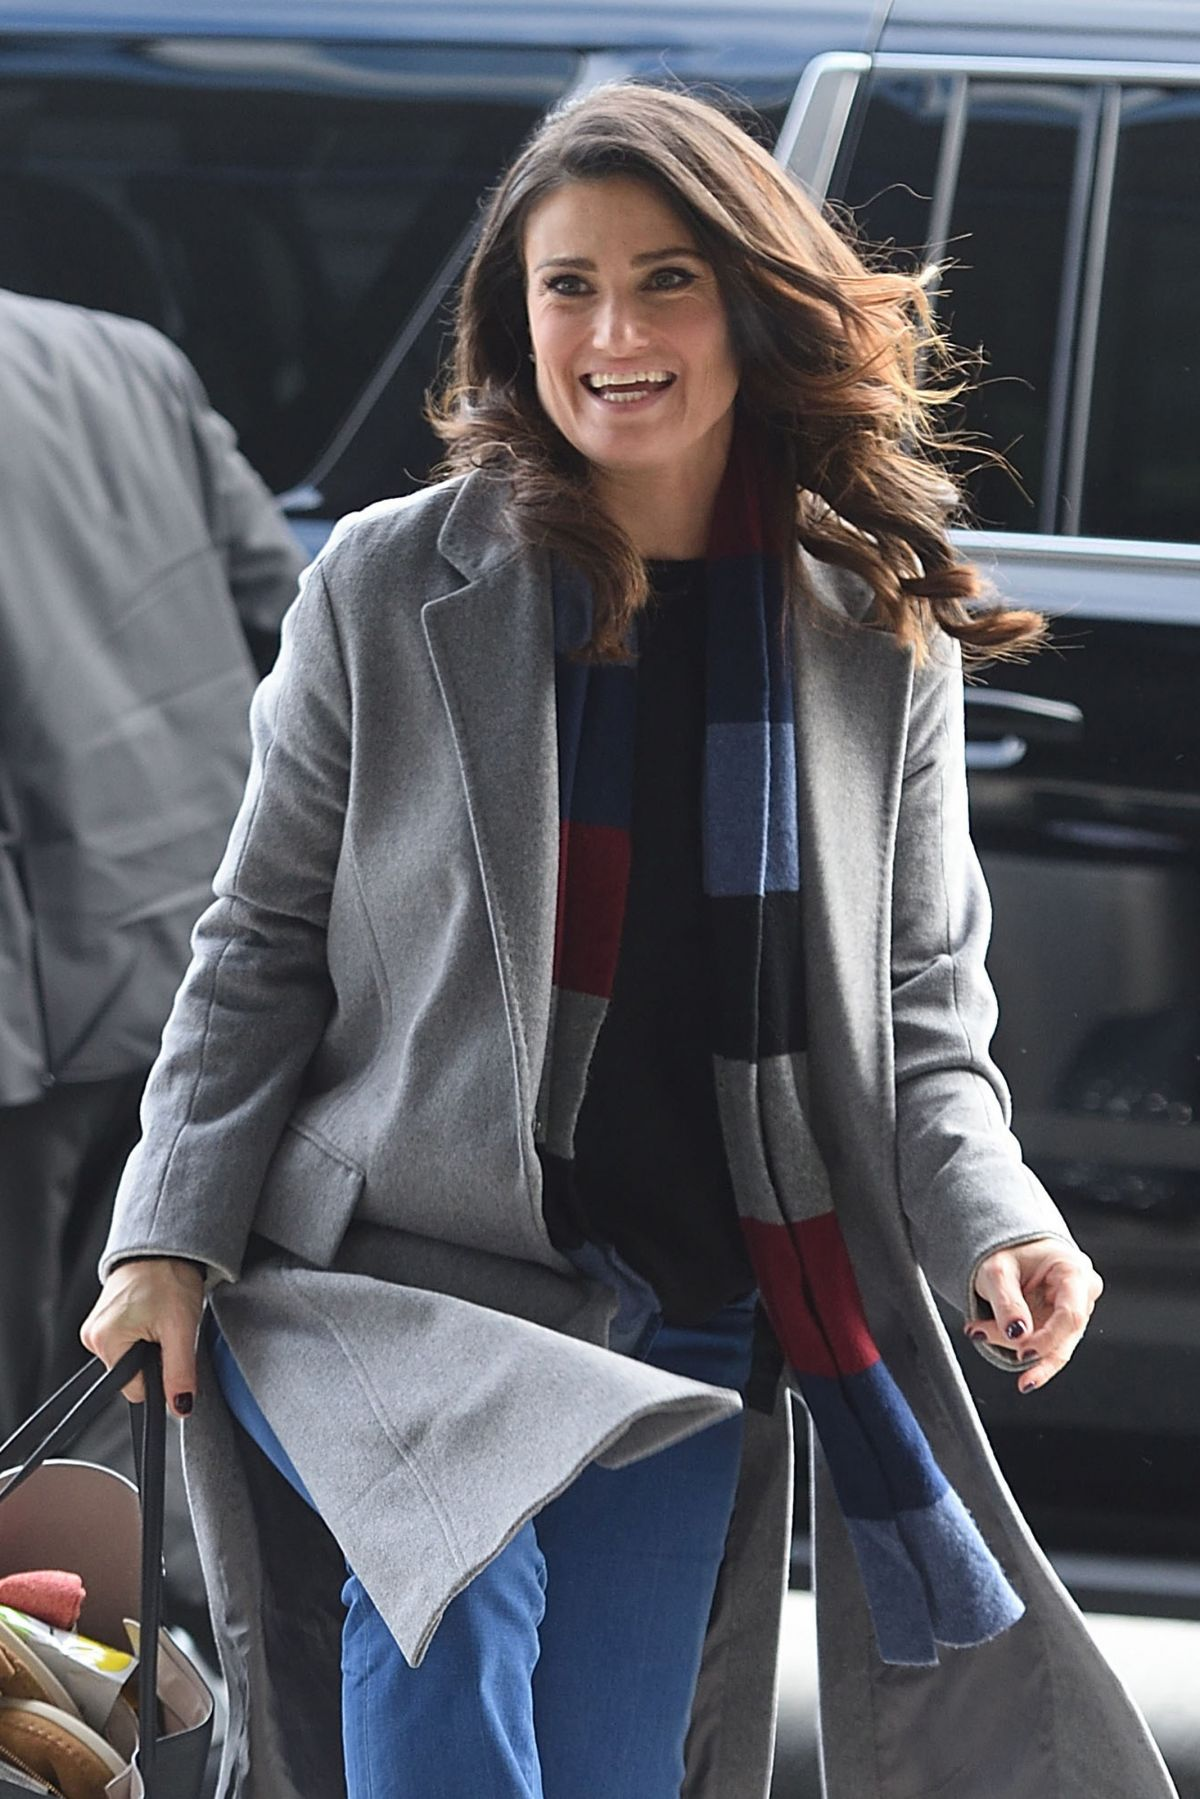 IDINA MENZEL at JFK Airport in New York 01/19/2017